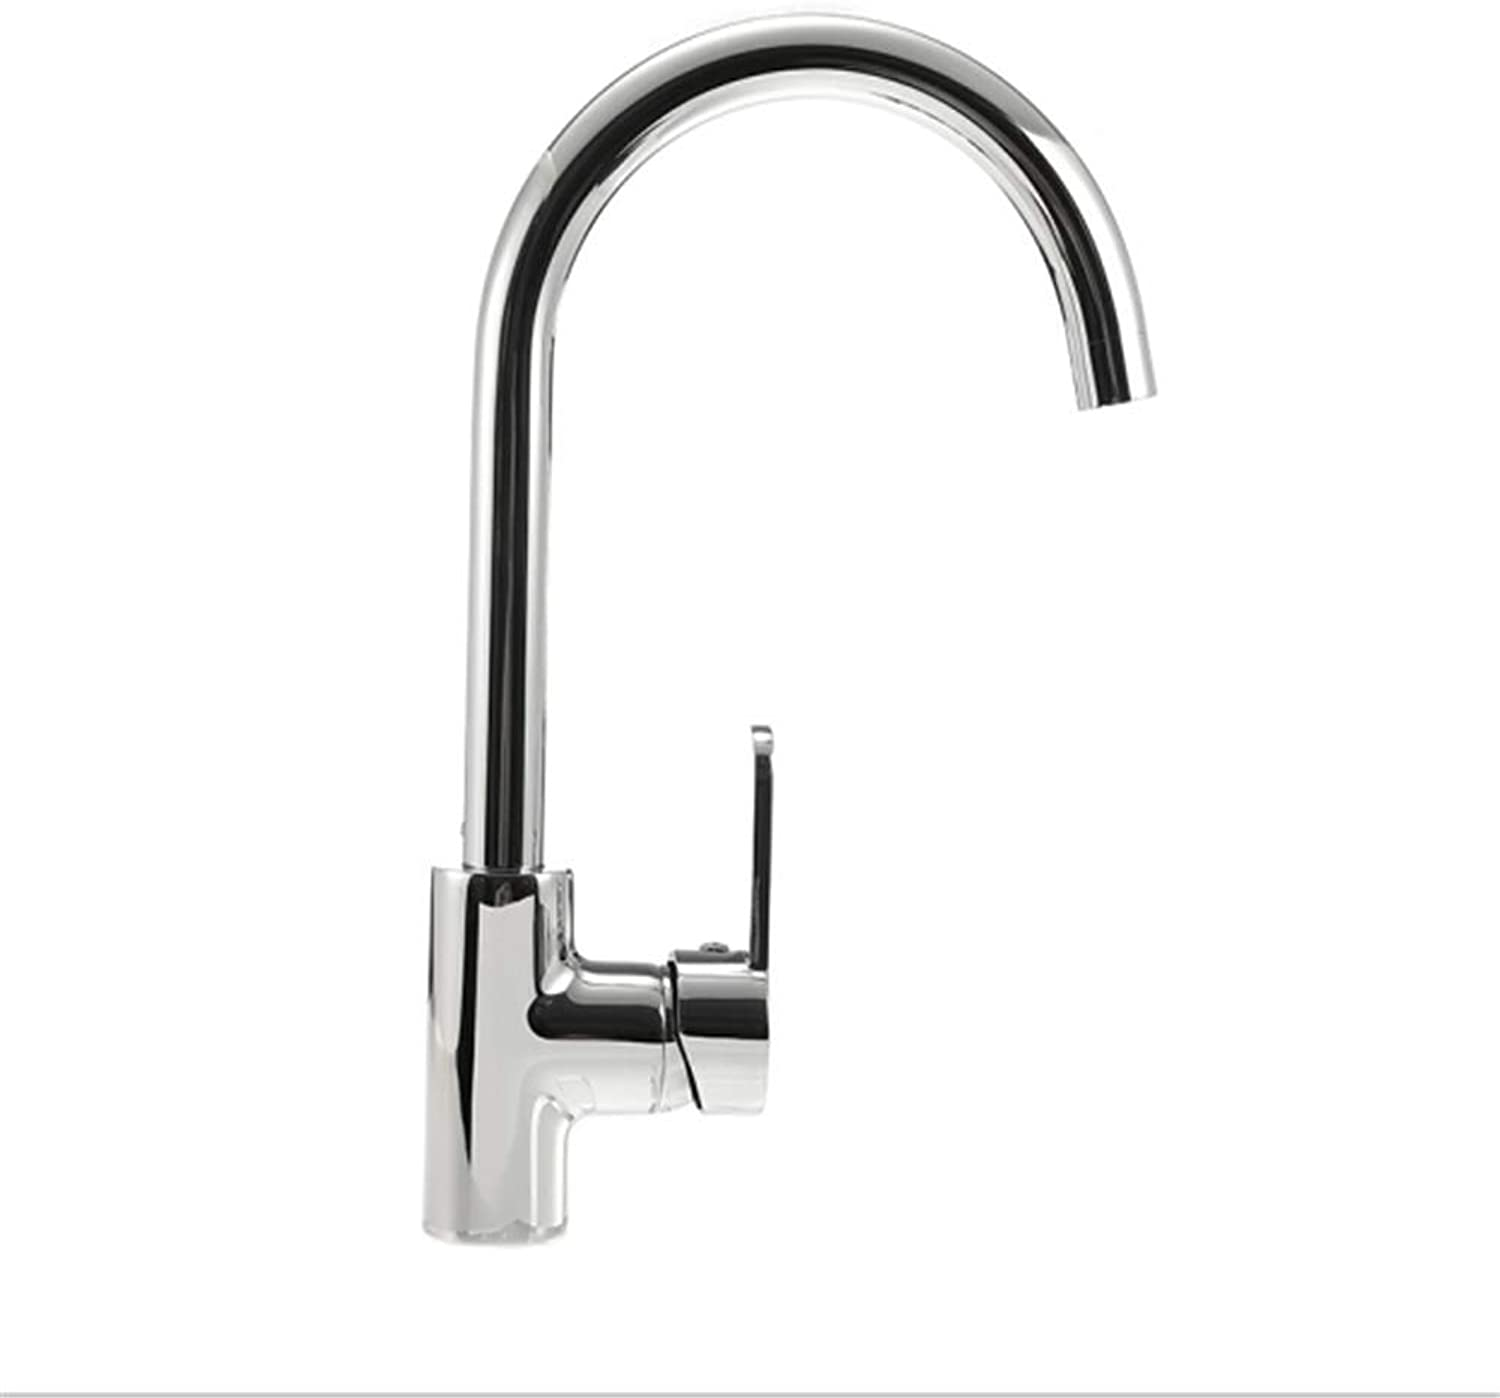 Kitchen Taps Faucet Modern Kitchen Sink Taps Stainless Steelcool and Hot Water Mixing Faucet, Basin, Basin, Vegetable Basin Nozzle